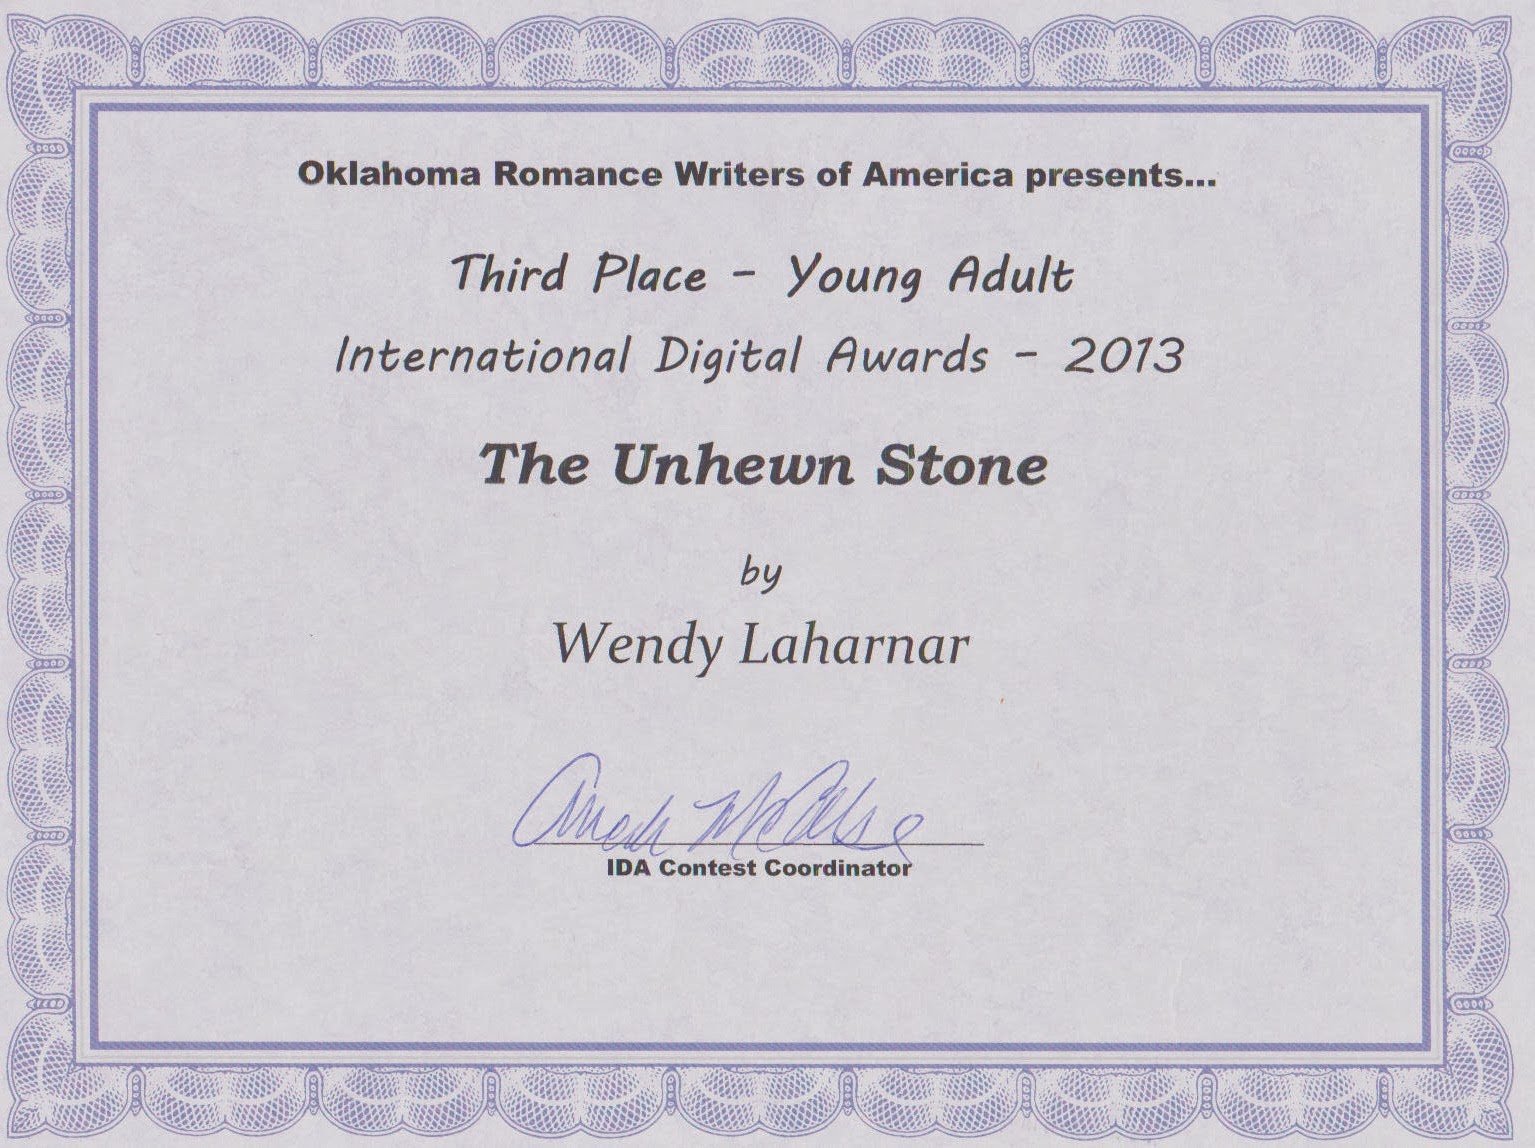 IDA Award for The Unhewn Stone